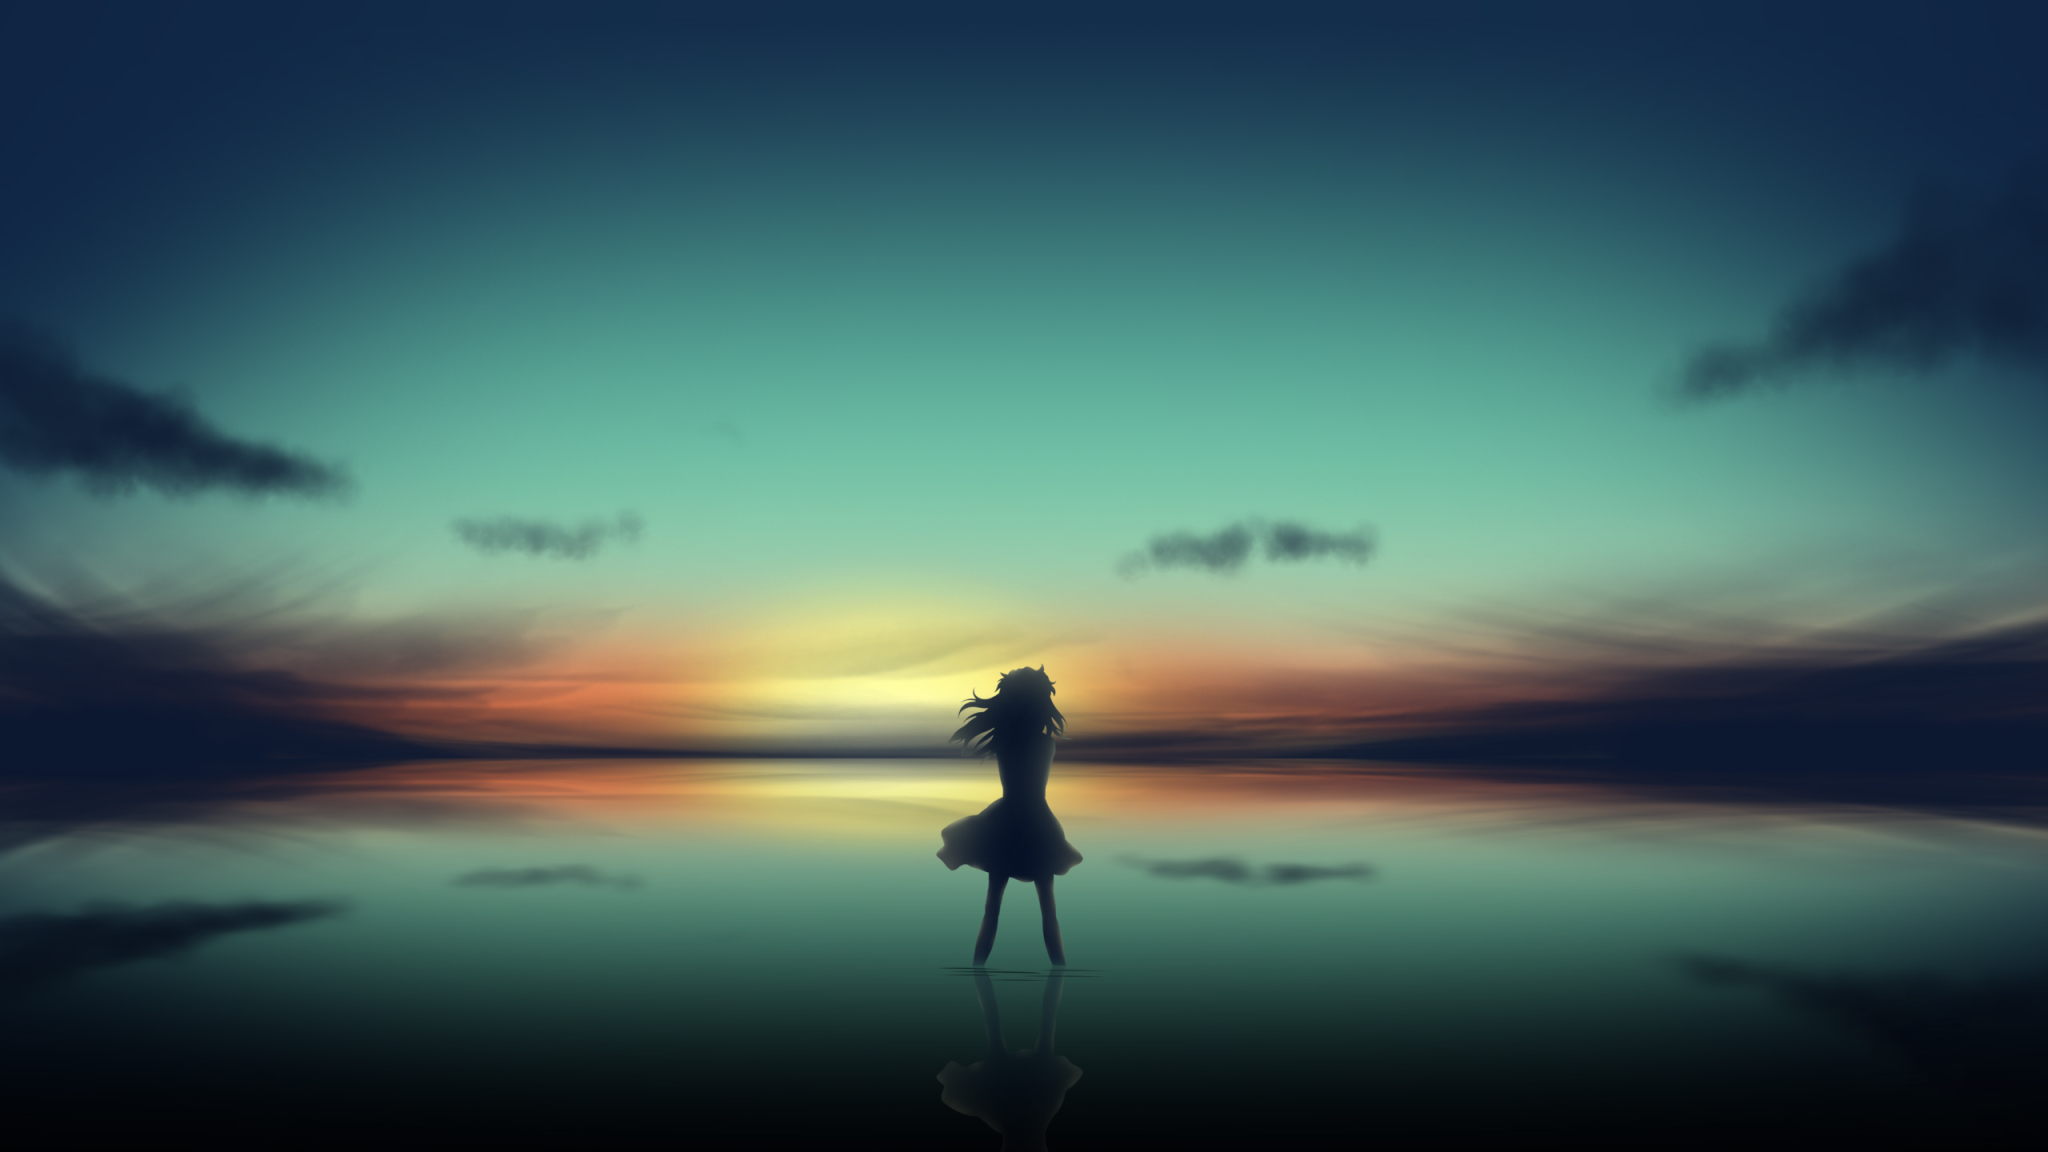 2048x1152 Anime Girl In Clear Sunset 2048x1152 Resolution ...